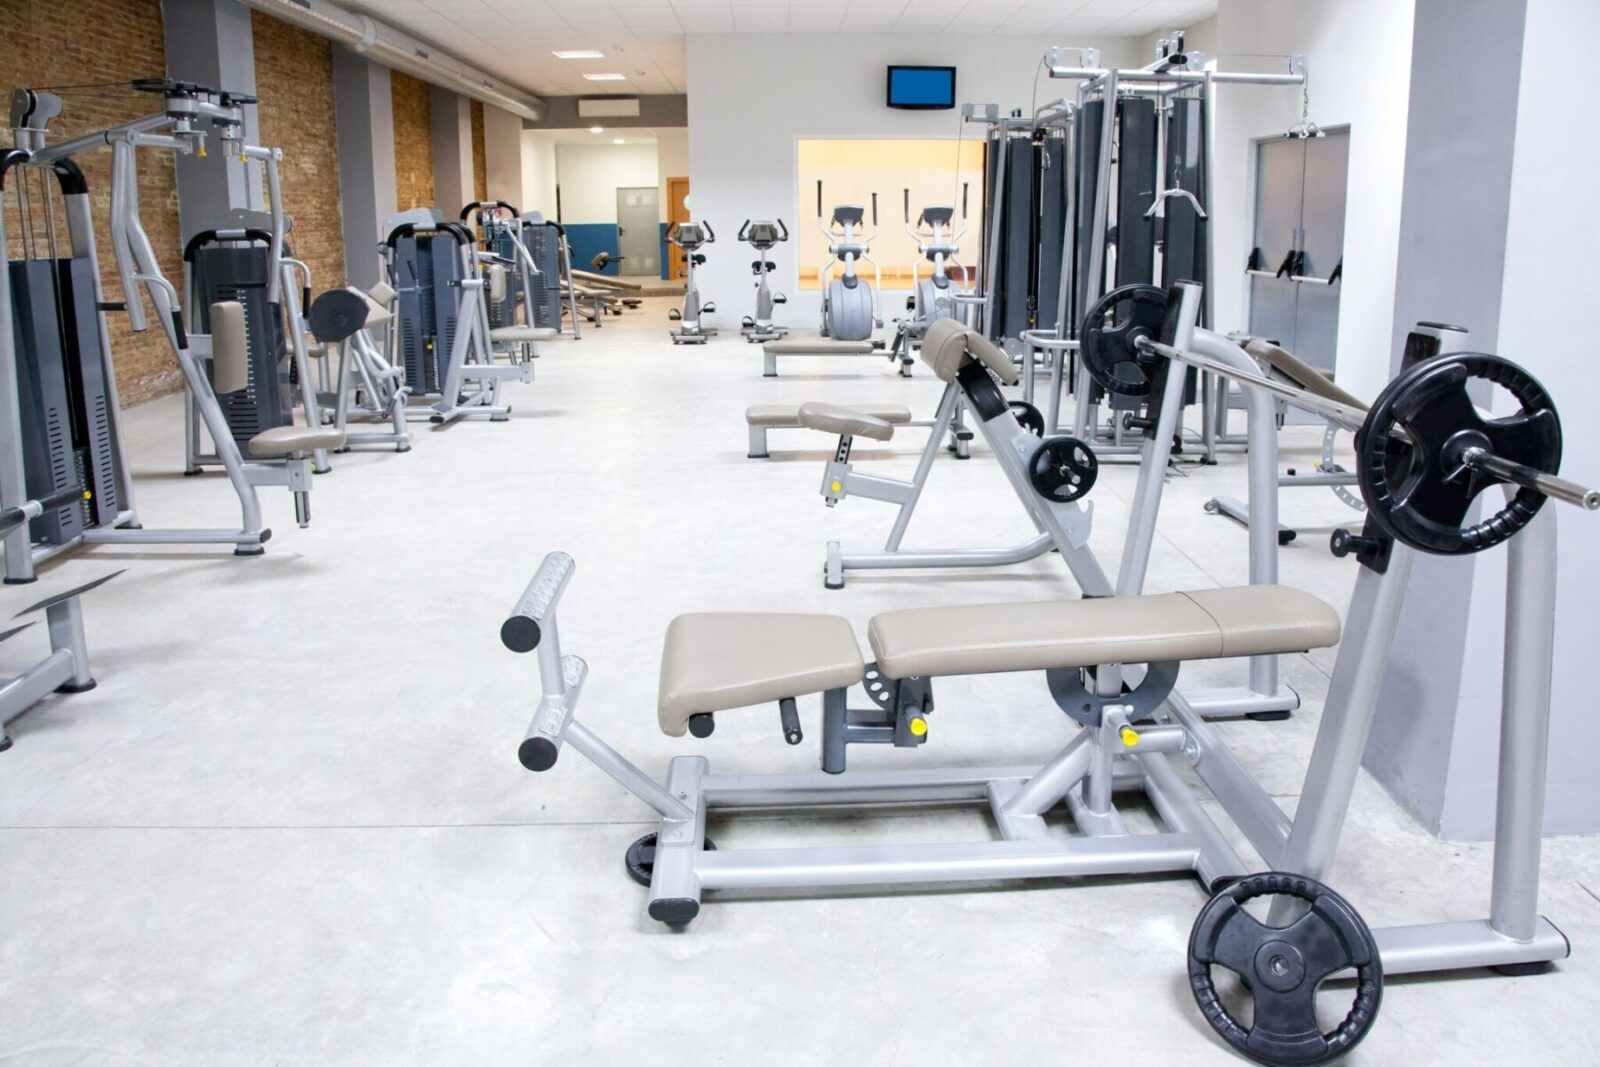 fitness center cleaning services port chester new york